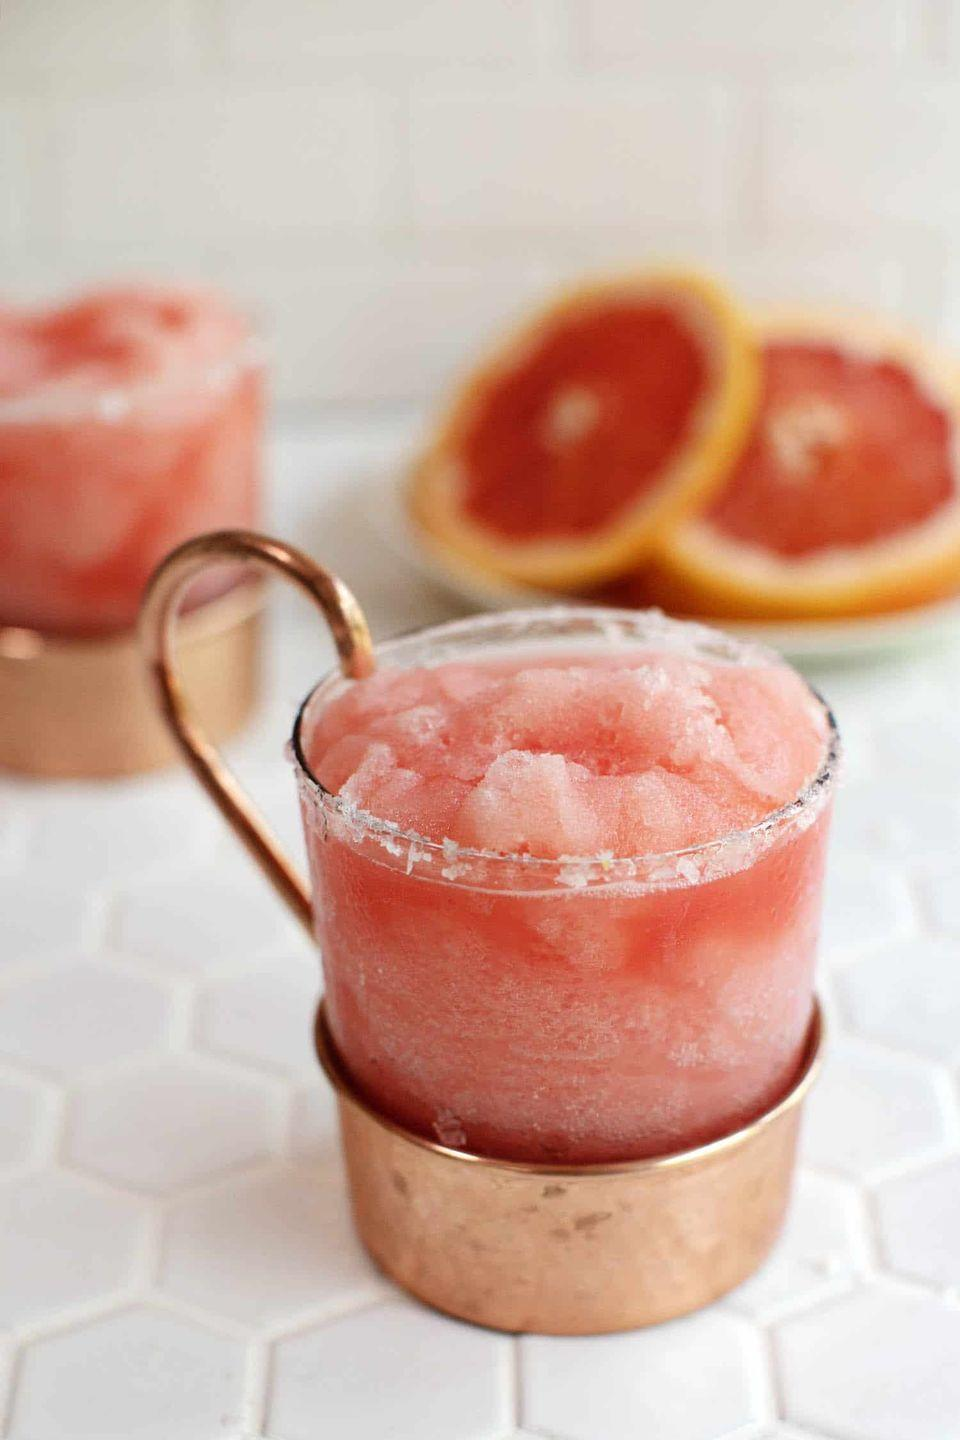 """<p>Try this frozen concoction that's made with gin or vodka—and only two other ingredients—for a delightful sip.</p><p><strong>Get the recipe at <a href=""""https://abeautifulmess.com/2018/05/frozen-sweet-and-salty-dog.html"""" rel=""""nofollow noopener"""" target=""""_blank"""" data-ylk=""""slk:A Beautiful Mess"""" class=""""link rapid-noclick-resp"""">A Beautiful Mess</a>.</strong></p><p><strong><a class=""""link rapid-noclick-resp"""" href=""""https://www.amazon.com/Hamilton-Beach-Functions-Dishwasher-58148A/dp/B00EI7DPI0/?tag=syn-yahoo-20&ascsubtag=%5Bartid%7C10050.g.30433150%5Bsrc%7Cyahoo-us"""" rel=""""nofollow noopener"""" target=""""_blank"""" data-ylk=""""slk:SHOP BLENDERS"""">SHOP BLENDERS</a><br></strong></p>"""